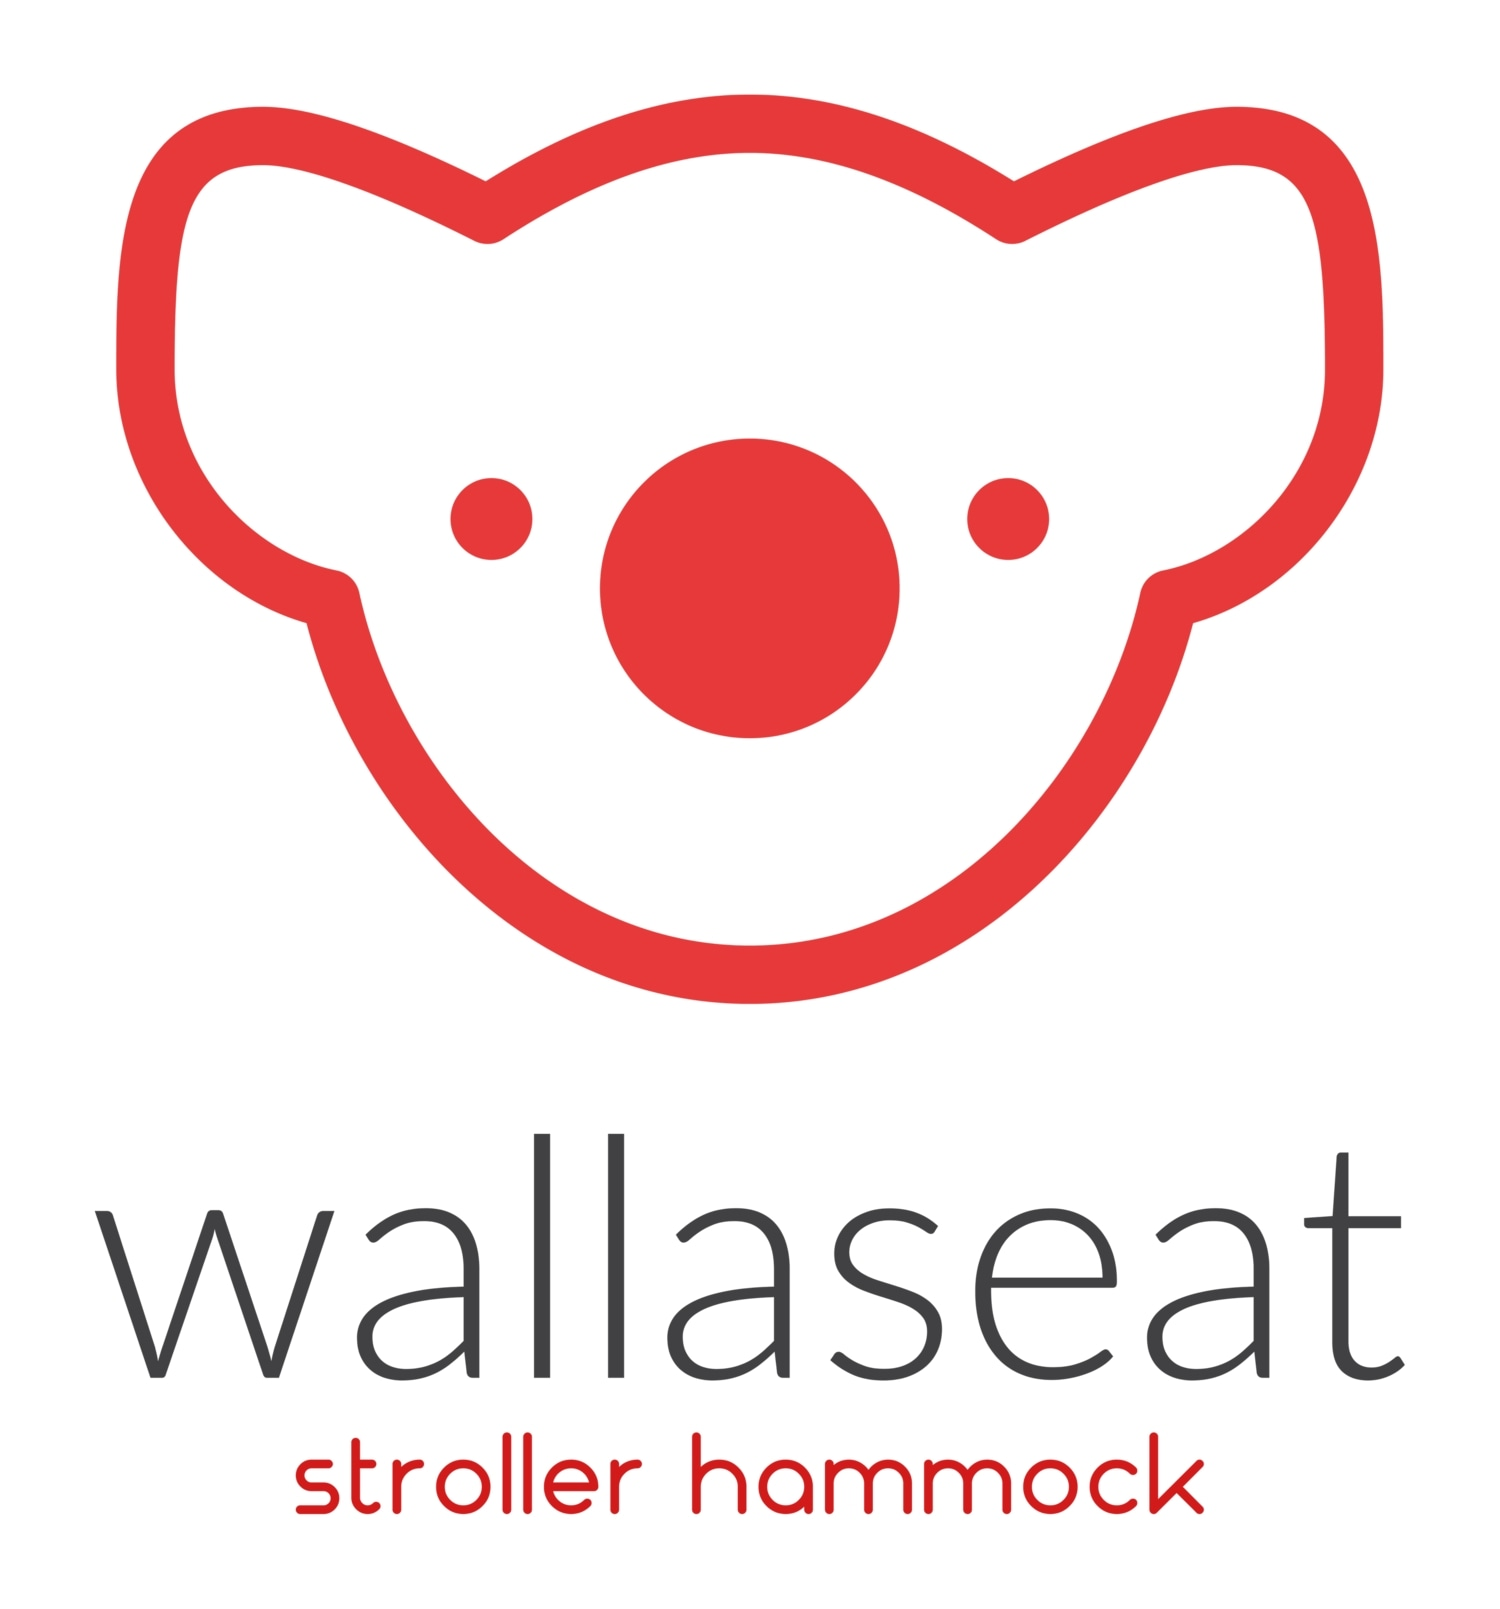 Wallaseat promo codes